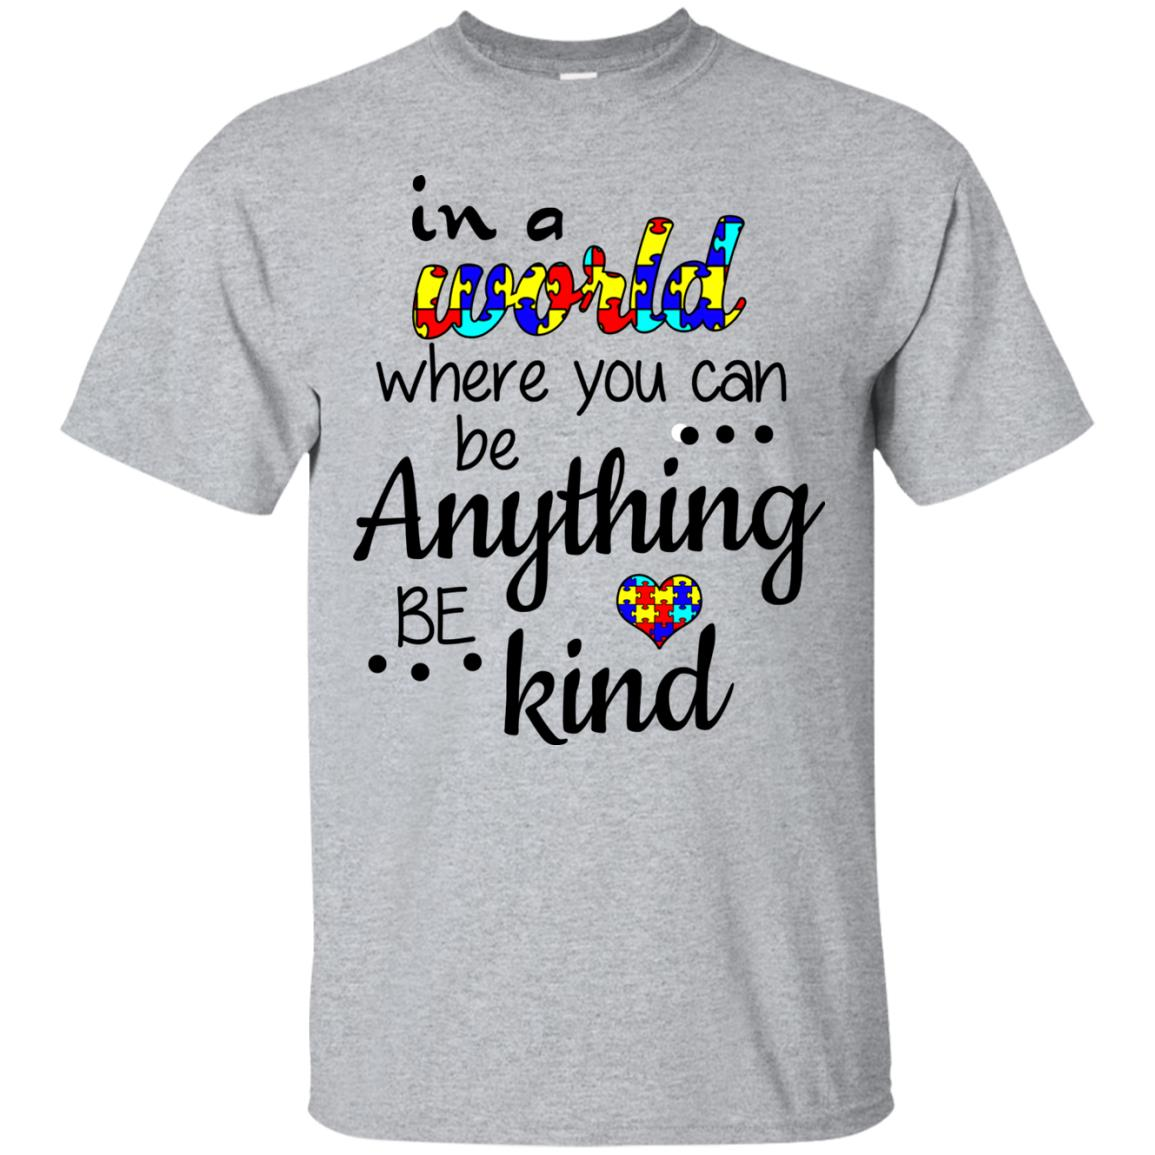 image 663 - Autism: In a World Where You Can Be Anything Be Kind Shirt